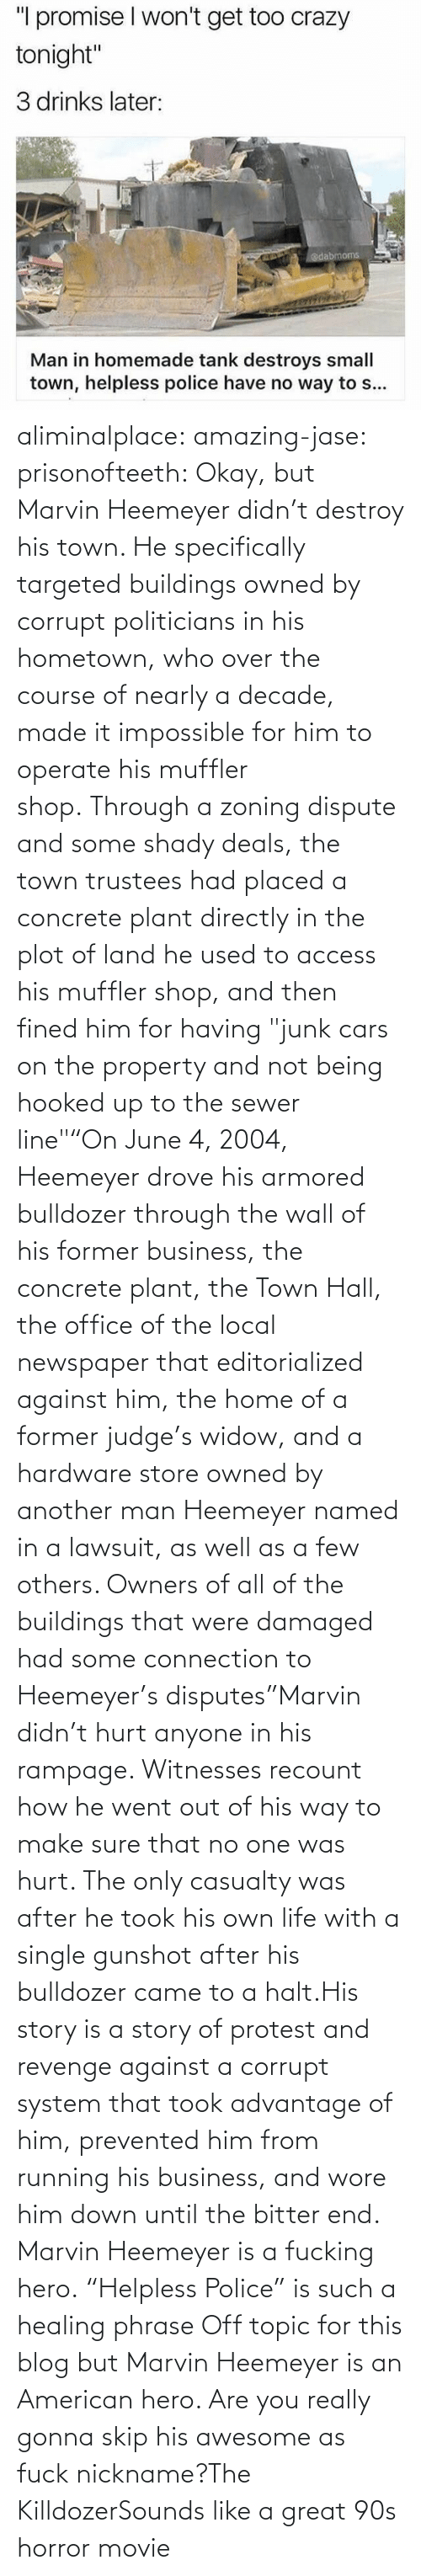 "wall: aliminalplace: amazing-jase:  prisonofteeth: Okay, but Marvin Heemeyer didn't destroy his town. He specifically targeted buildings owned by corrupt politicians in his hometown, who over the course of nearly a decade, made it impossible for him to operate his muffler shop. Through a zoning dispute and some shady deals, the town trustees had placed a concrete plant directly in the plot of land he used to access his muffler shop, and then fined him for having ""junk cars on the property and not being hooked up to the sewer line""""On June 4, 2004, Heemeyer drove his armored bulldozer through the wall of his former business, the concrete plant, the Town Hall, the office of the local newspaper that editorialized against him, the home of a former judge's widow, and a hardware store owned by another man Heemeyer named in a lawsuit, as well as a few others. Owners of all of the buildings that were damaged had some connection to Heemeyer's disputes""Marvin didn't hurt anyone in his rampage. Witnesses recount how he went out of his way to make sure that no one was hurt. The only casualty was after he took his own life with a single gunshot after his bulldozer came to a halt.His story is a story of protest and revenge against a corrupt system that took advantage of him, prevented him from running his business, and wore him down until the bitter end. Marvin Heemeyer is a fucking hero. ""Helpless Police"" is such a healing phrase    Off topic for this blog but Marvin Heemeyer is an American hero.     Are you really gonna skip his awesome as fuck nickname?The KilldozerSounds like a great 90s horror movie"